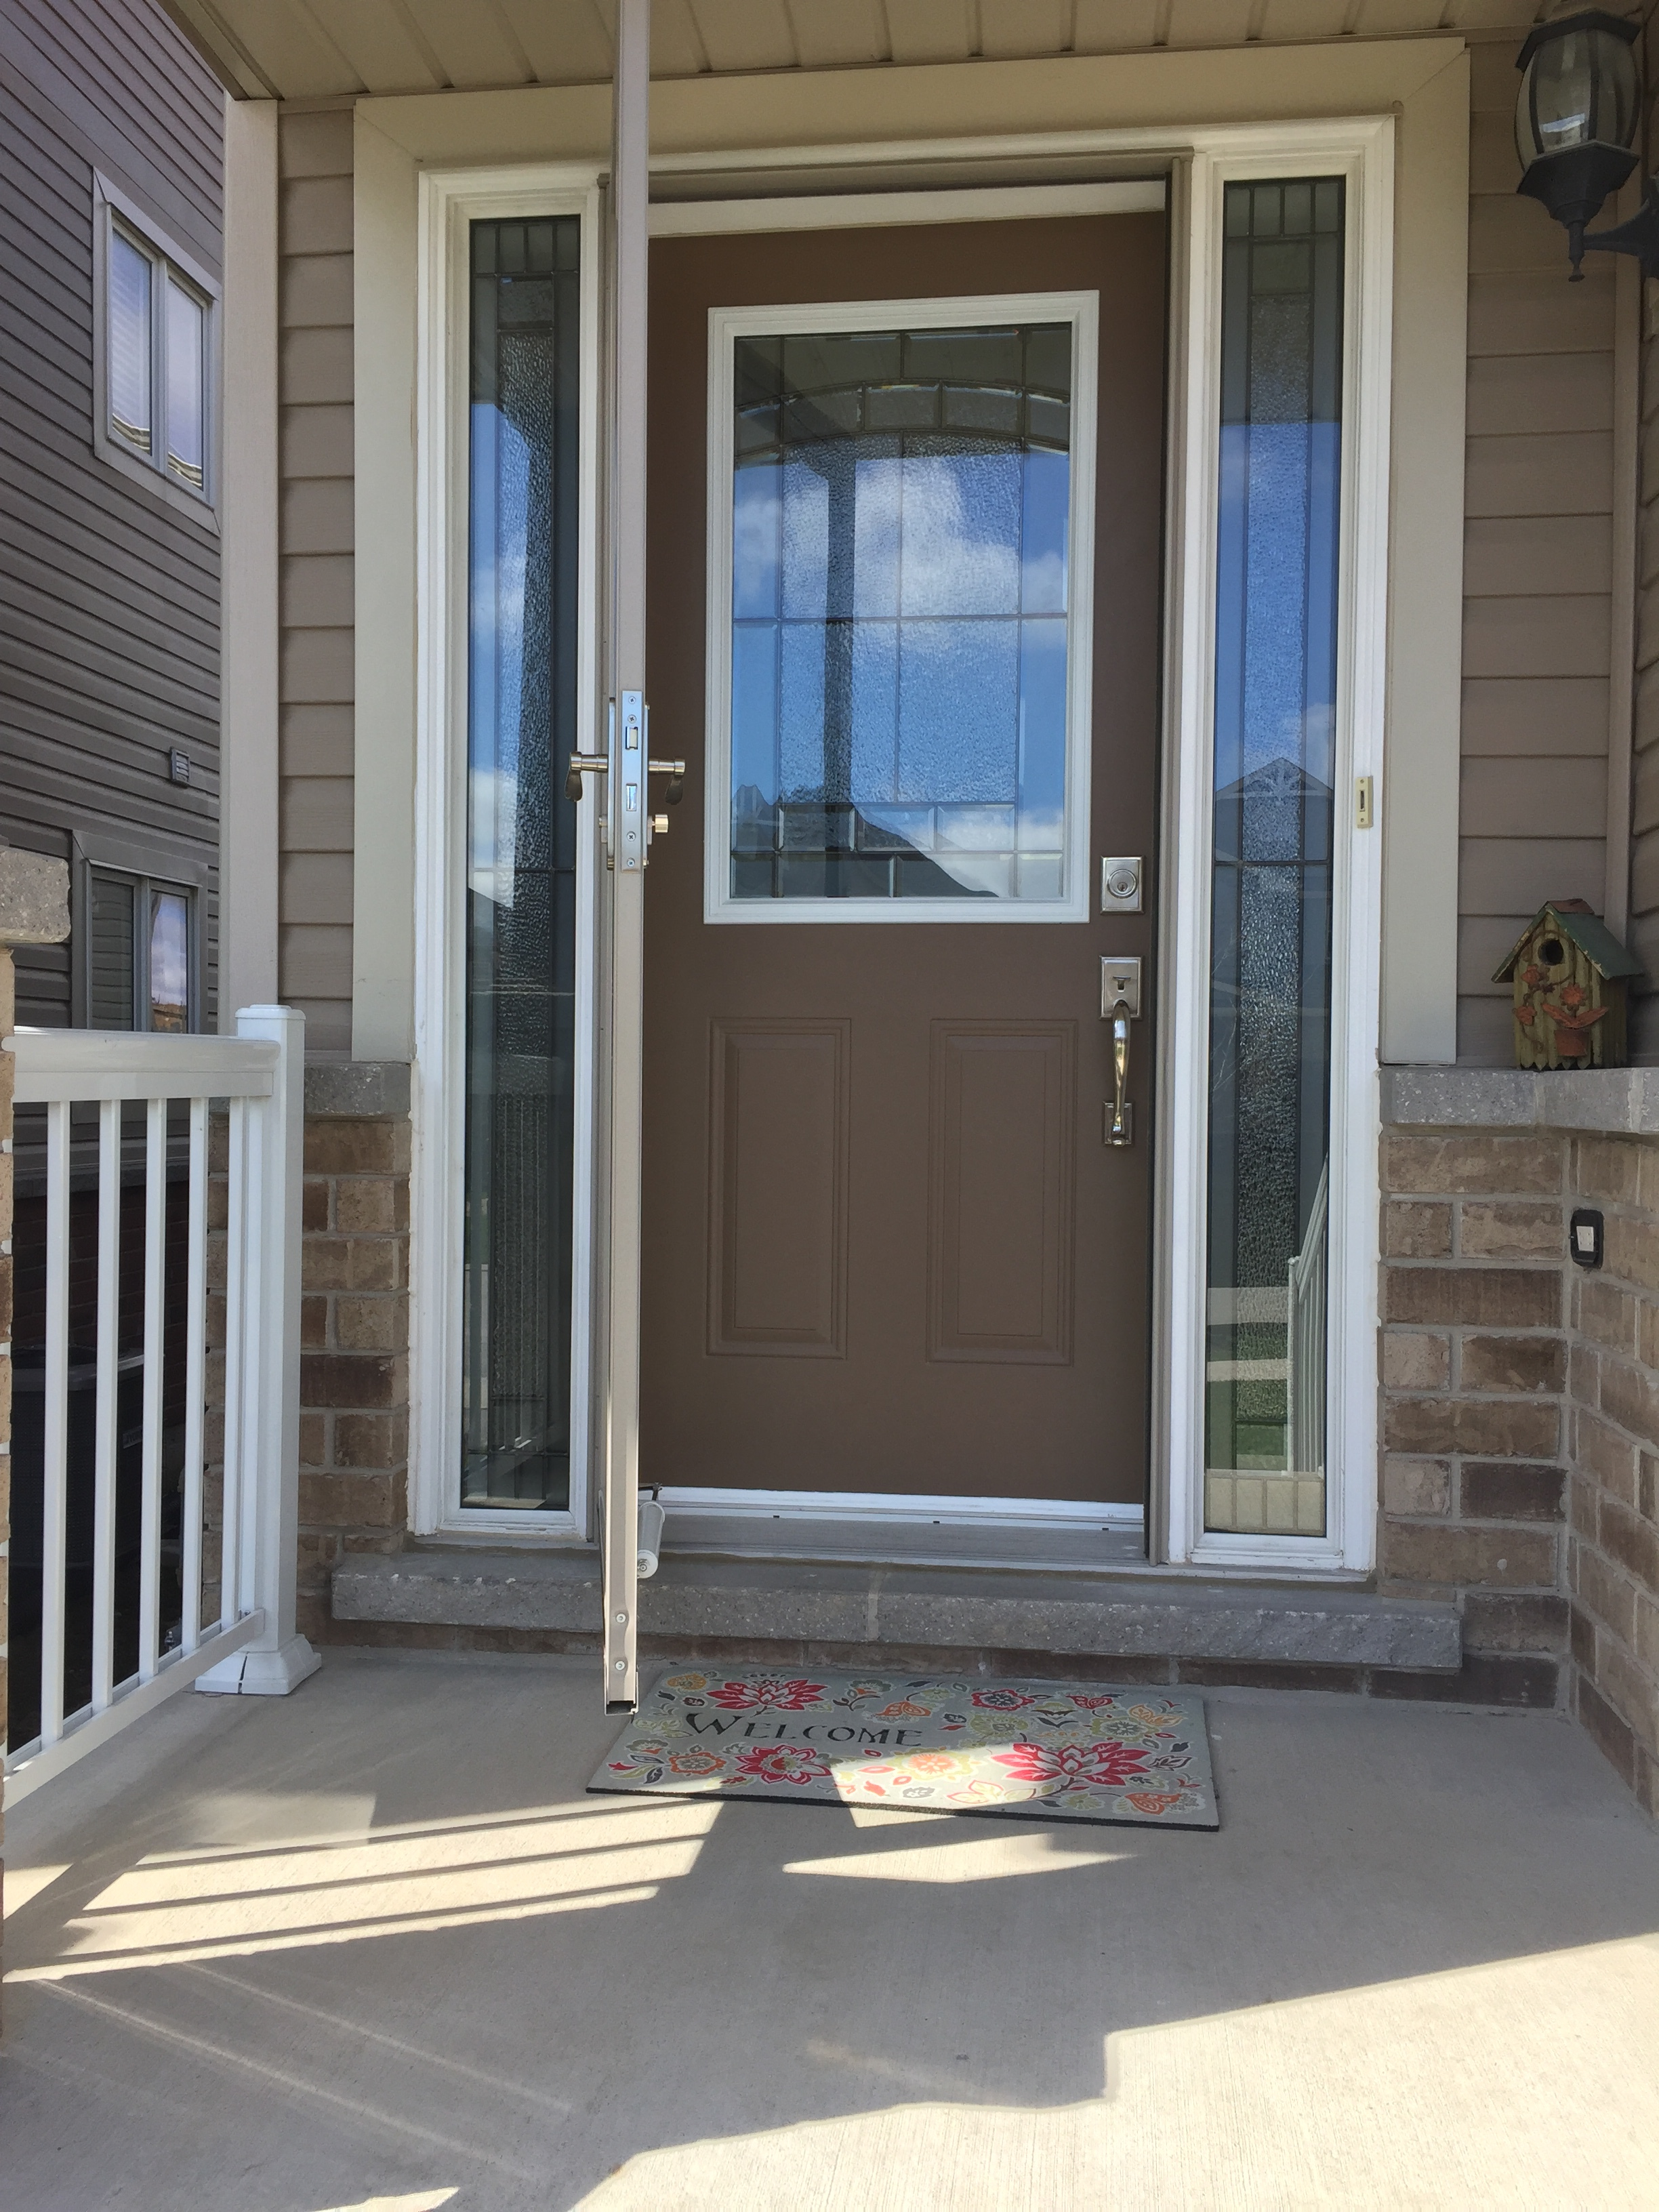 Ashbourne-Decortive-glass-door-insert-orillia-on